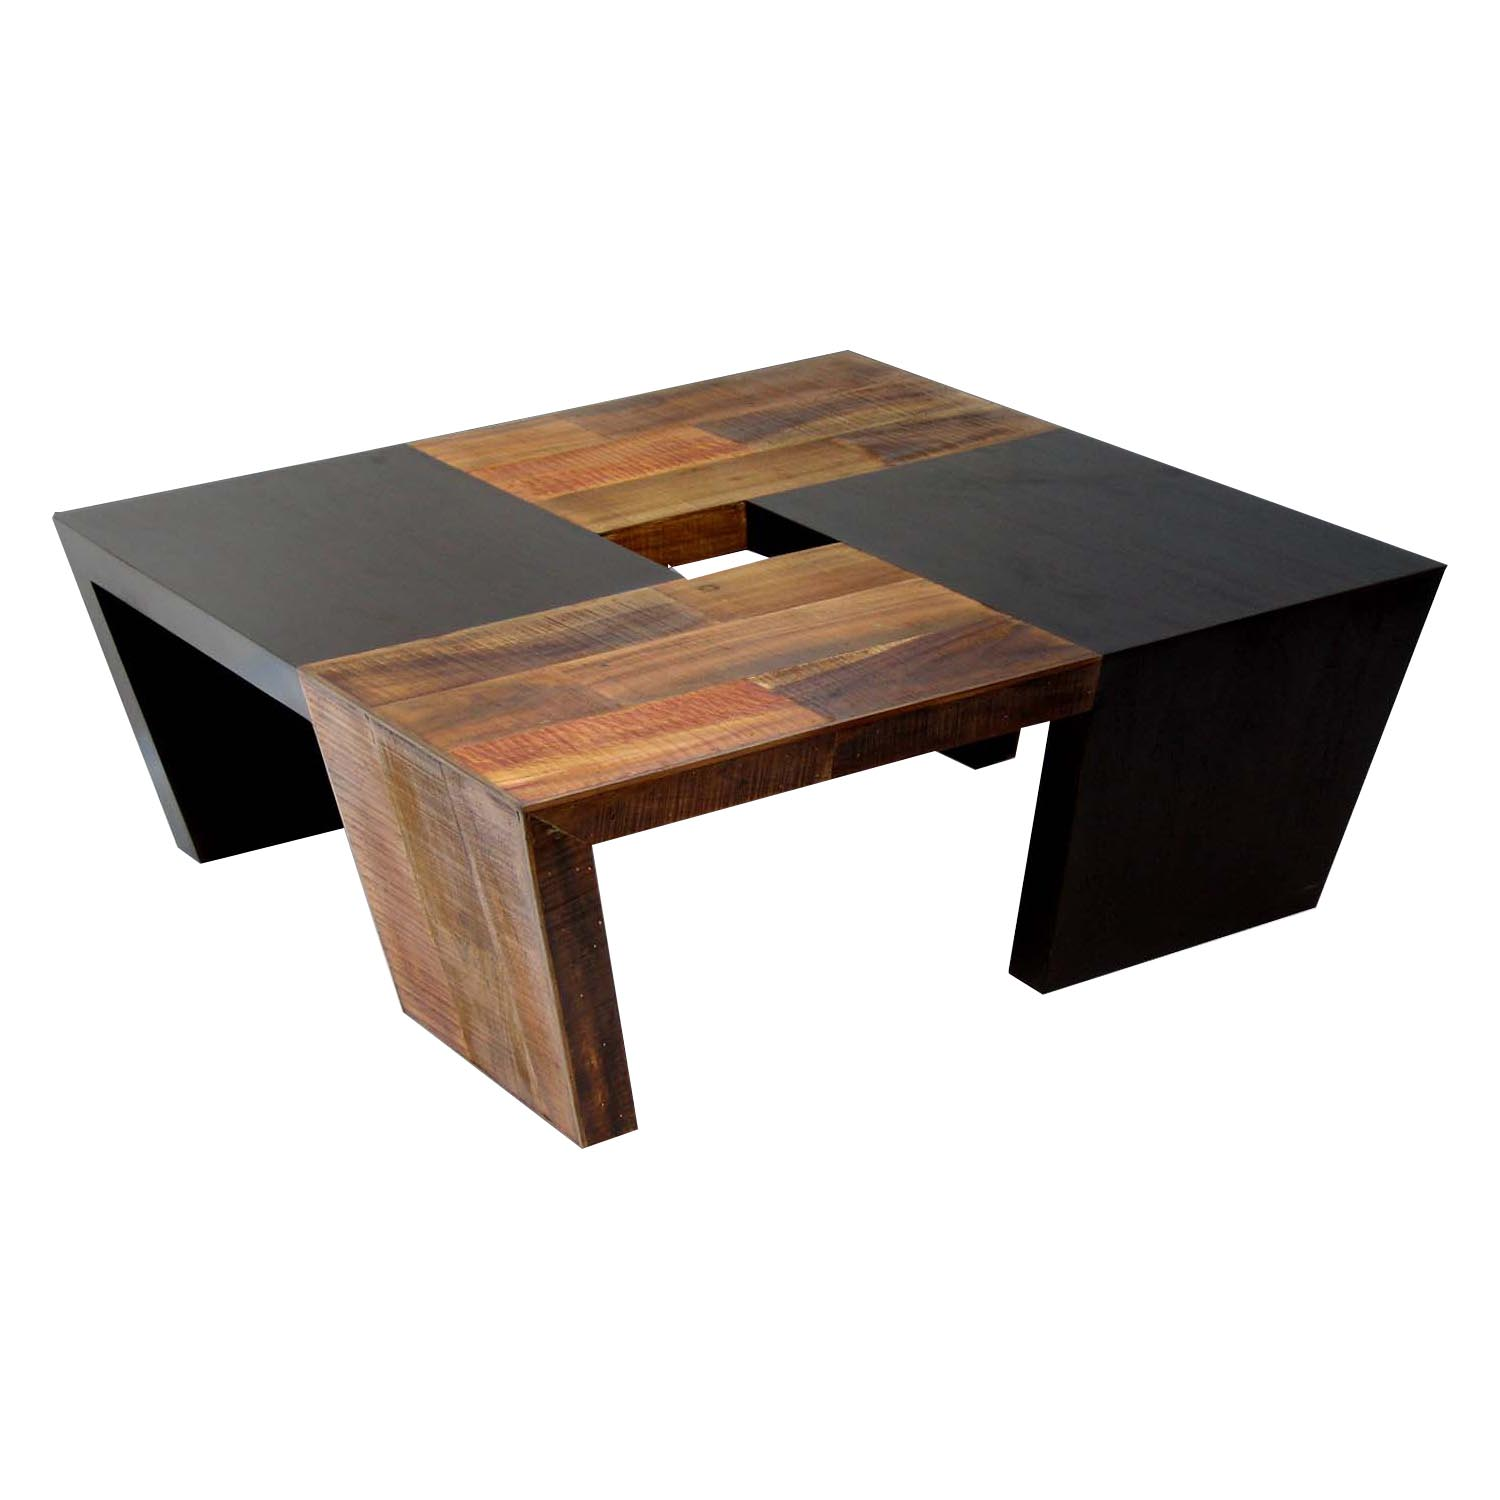 Modern wood coffee table coffee table design ideas for Modern wooden coffee tables